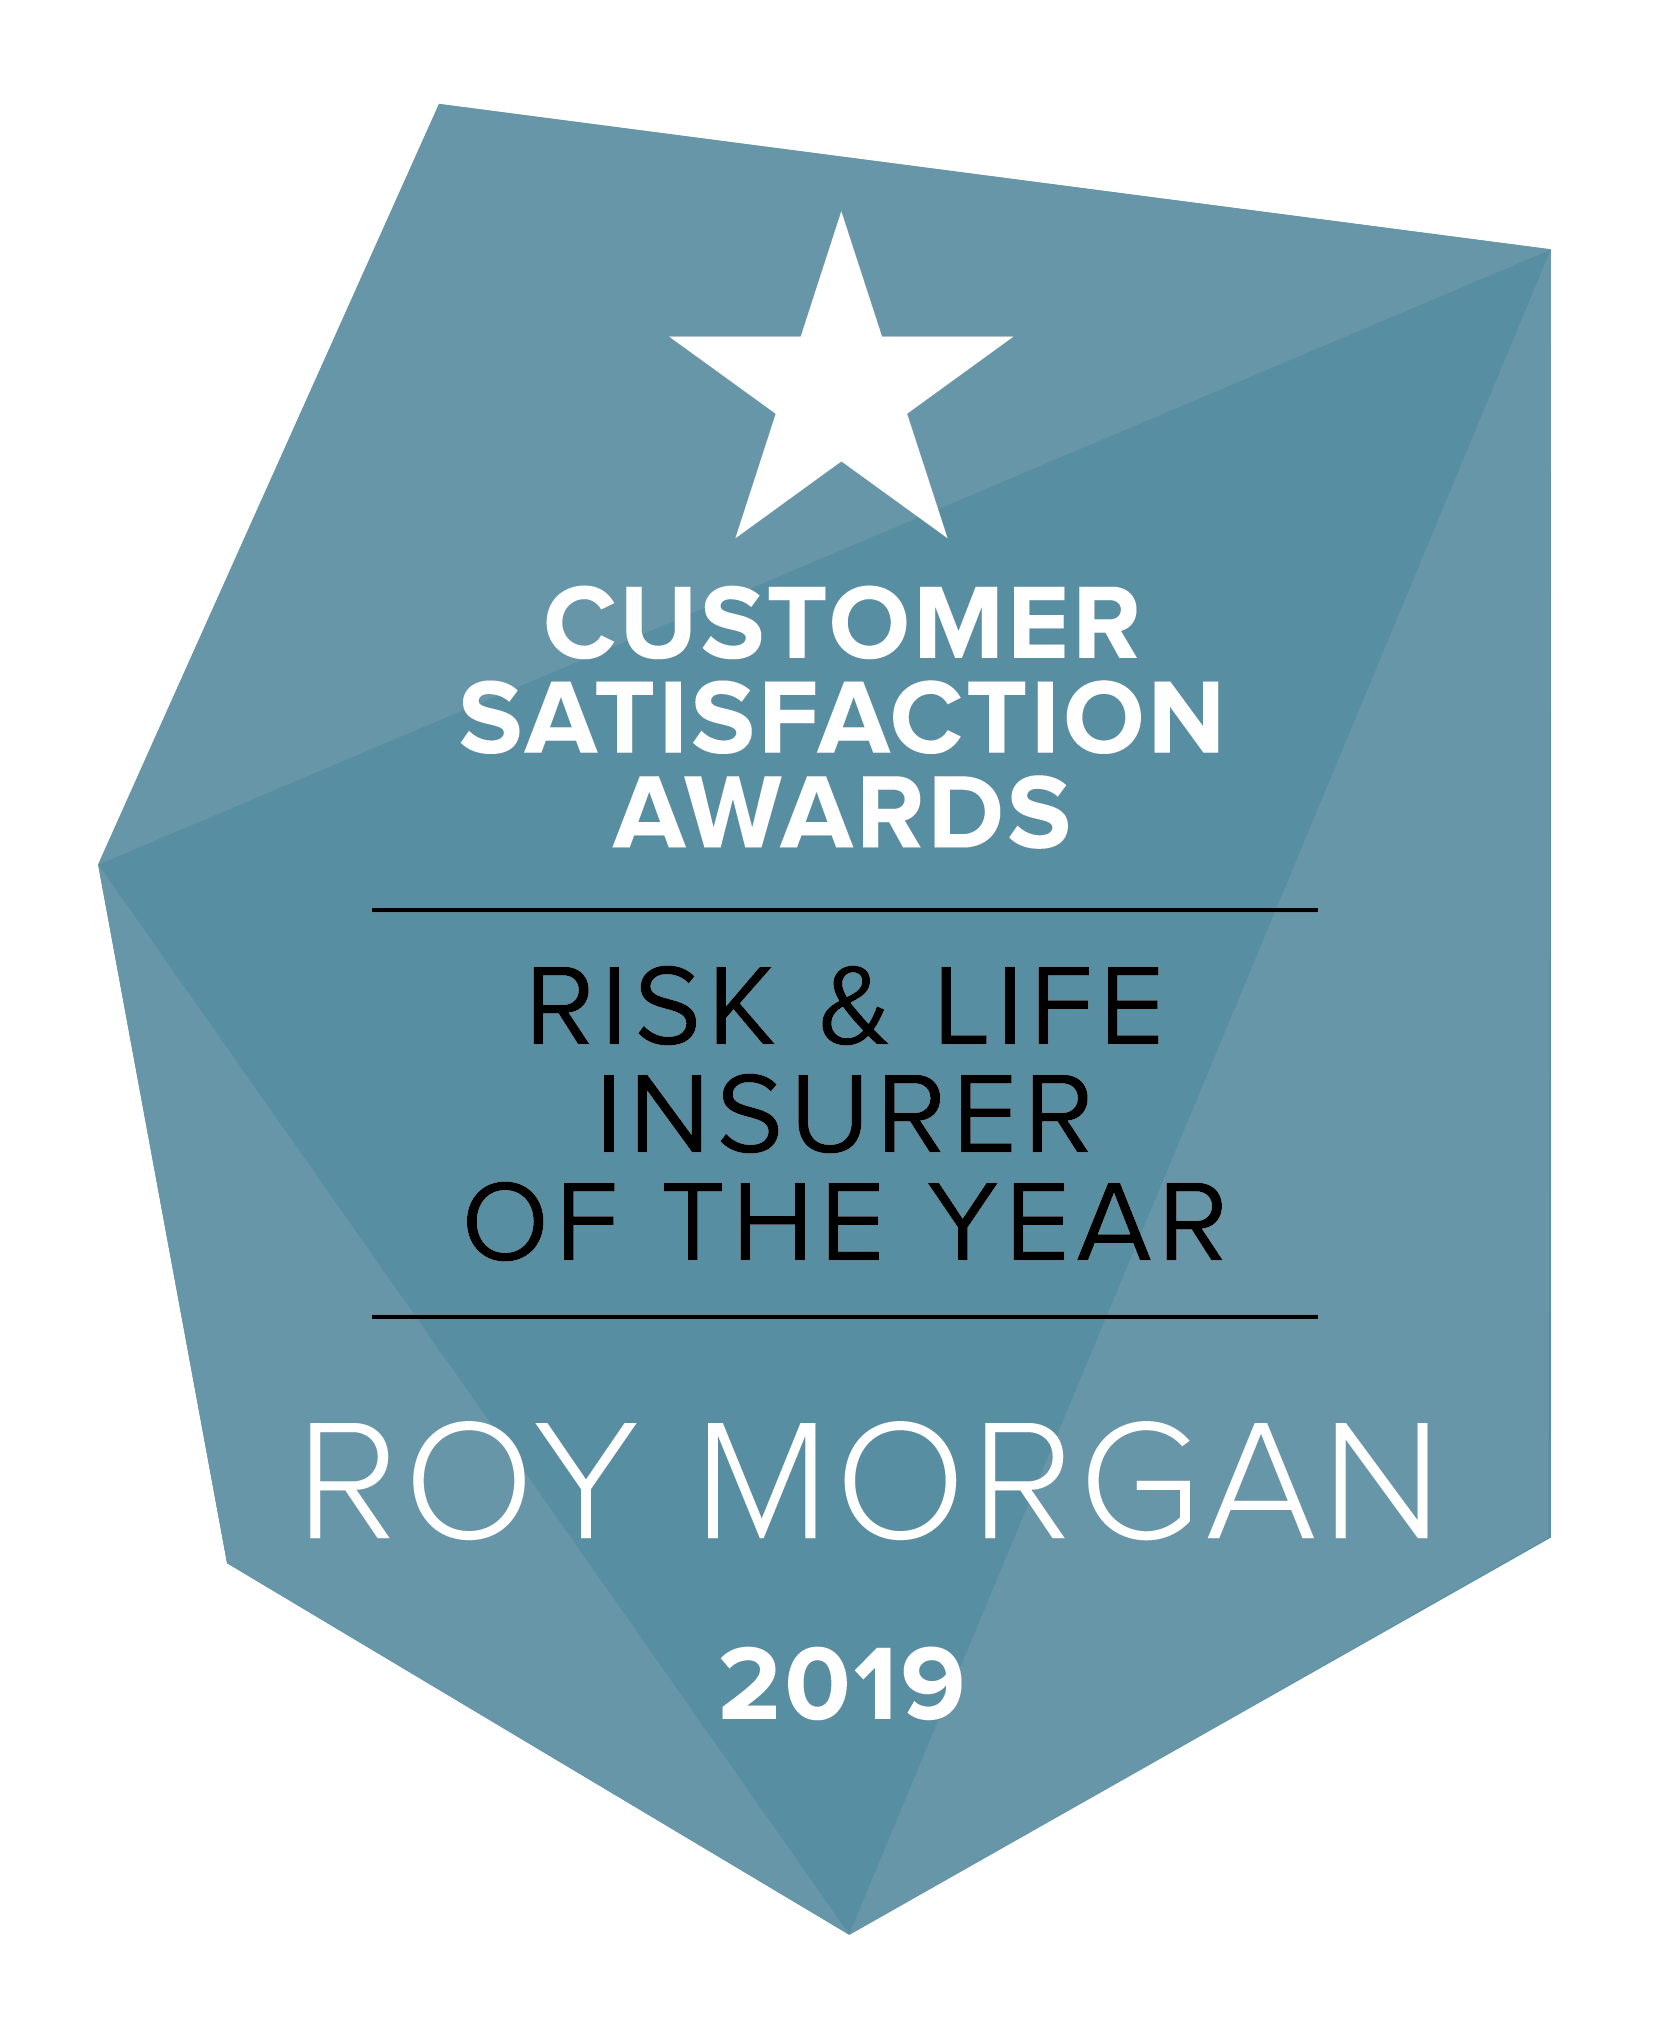 Roy Morgan Risk and Life Insurer of the Year 2019